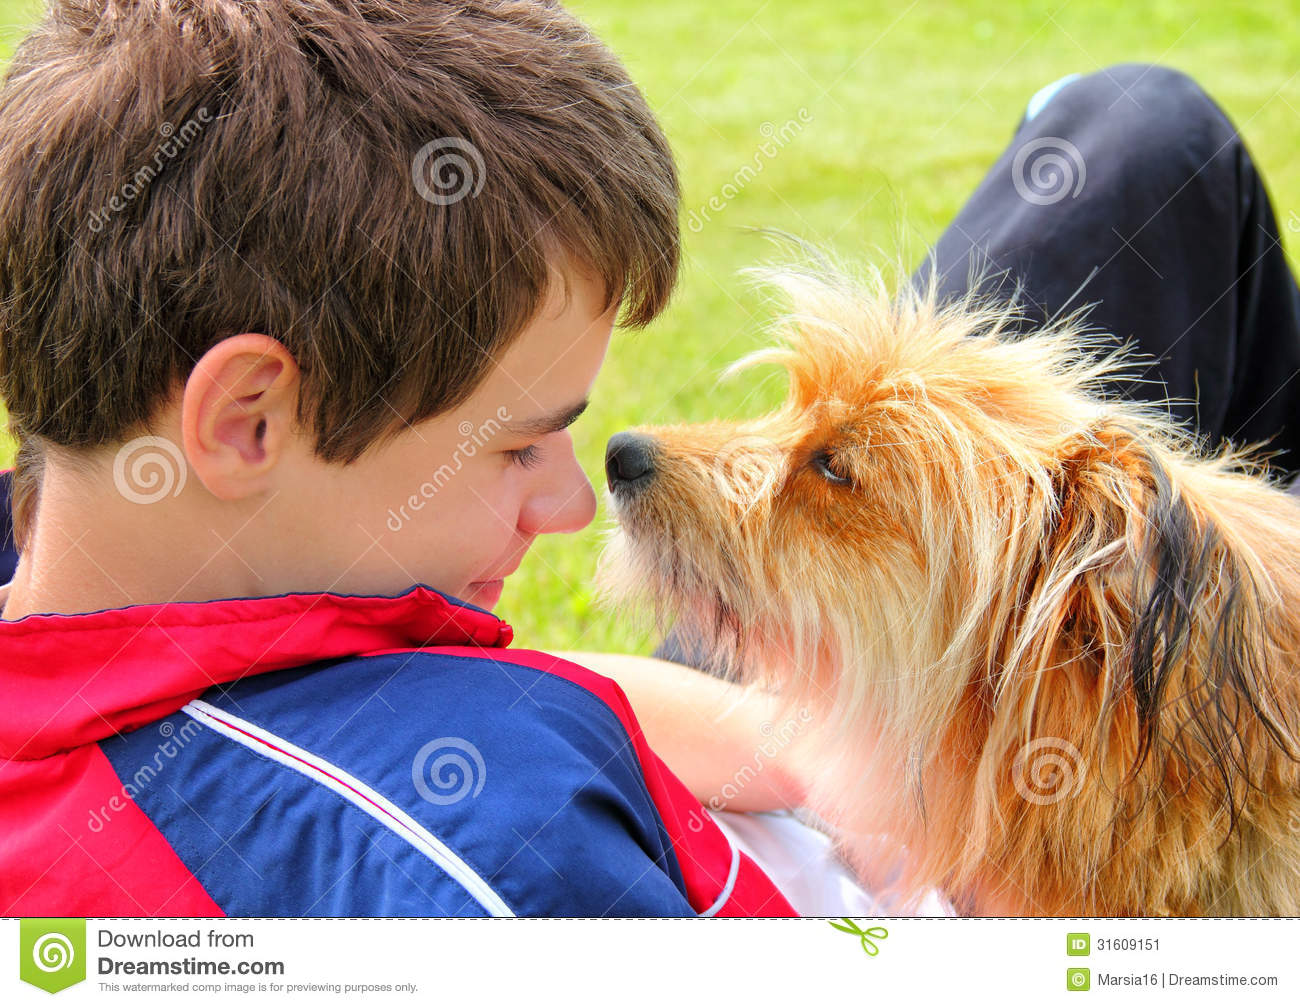 Dog sniffing the boys face